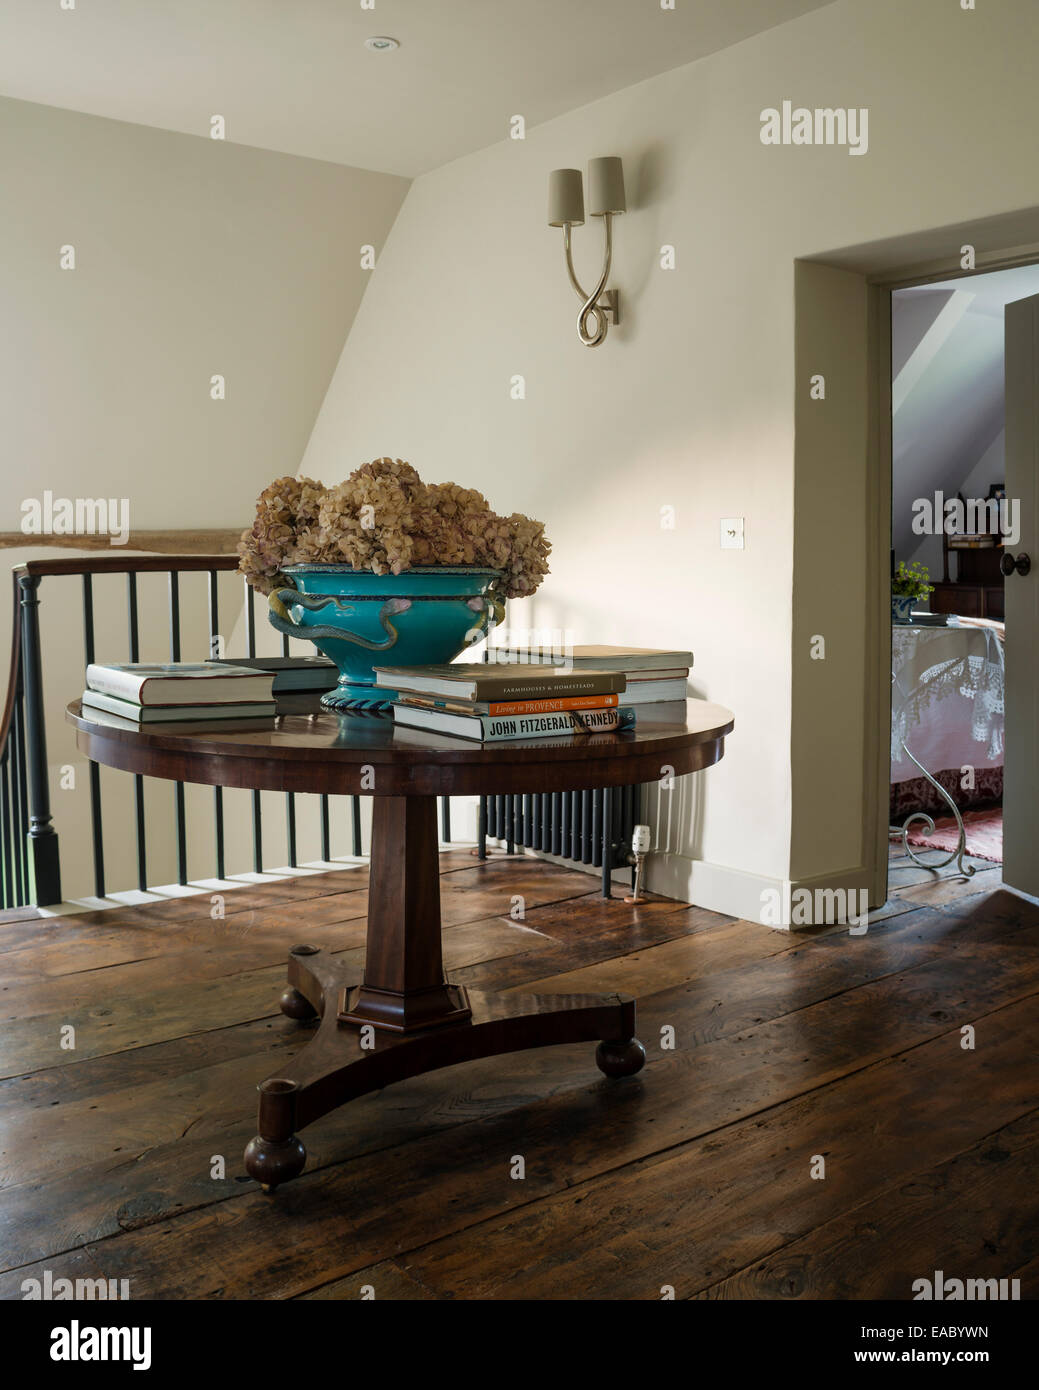 Round table with books and dried hydrangeas on upstairs landing with elm flooring - Stock Image